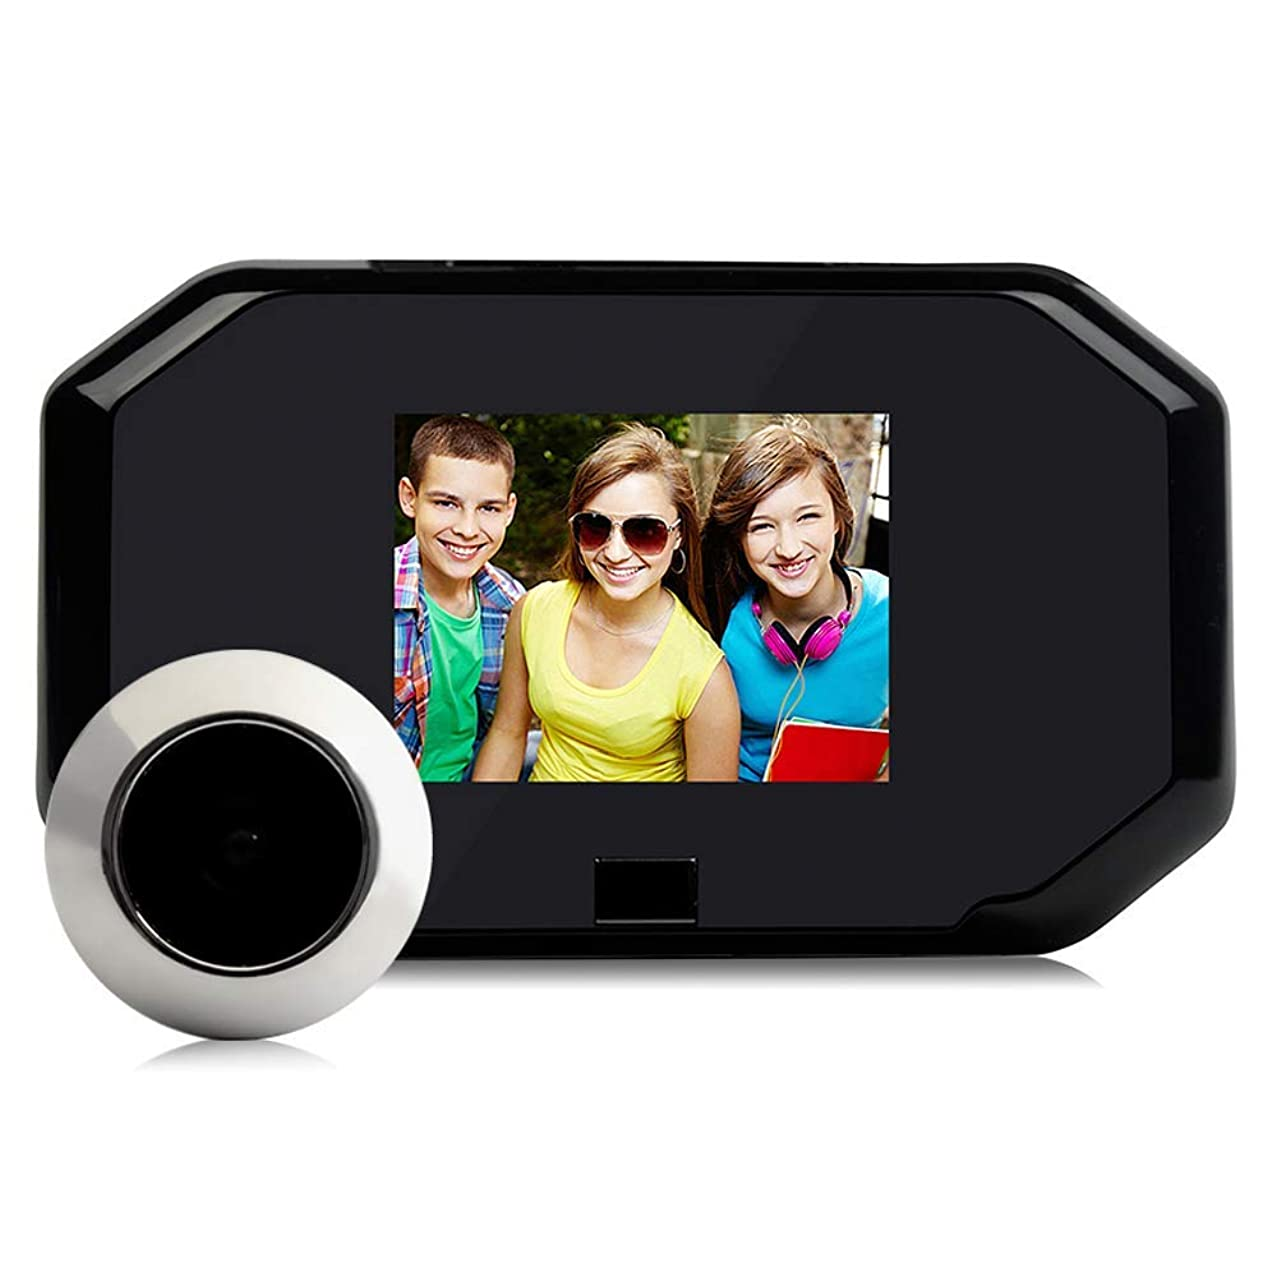 TQ Video-Visual doorbell Monitoring System 1080p HD Electronic cat Eye doorbell and 3.0 inch Indoor Display, Video Surveillance, no Cabling Required